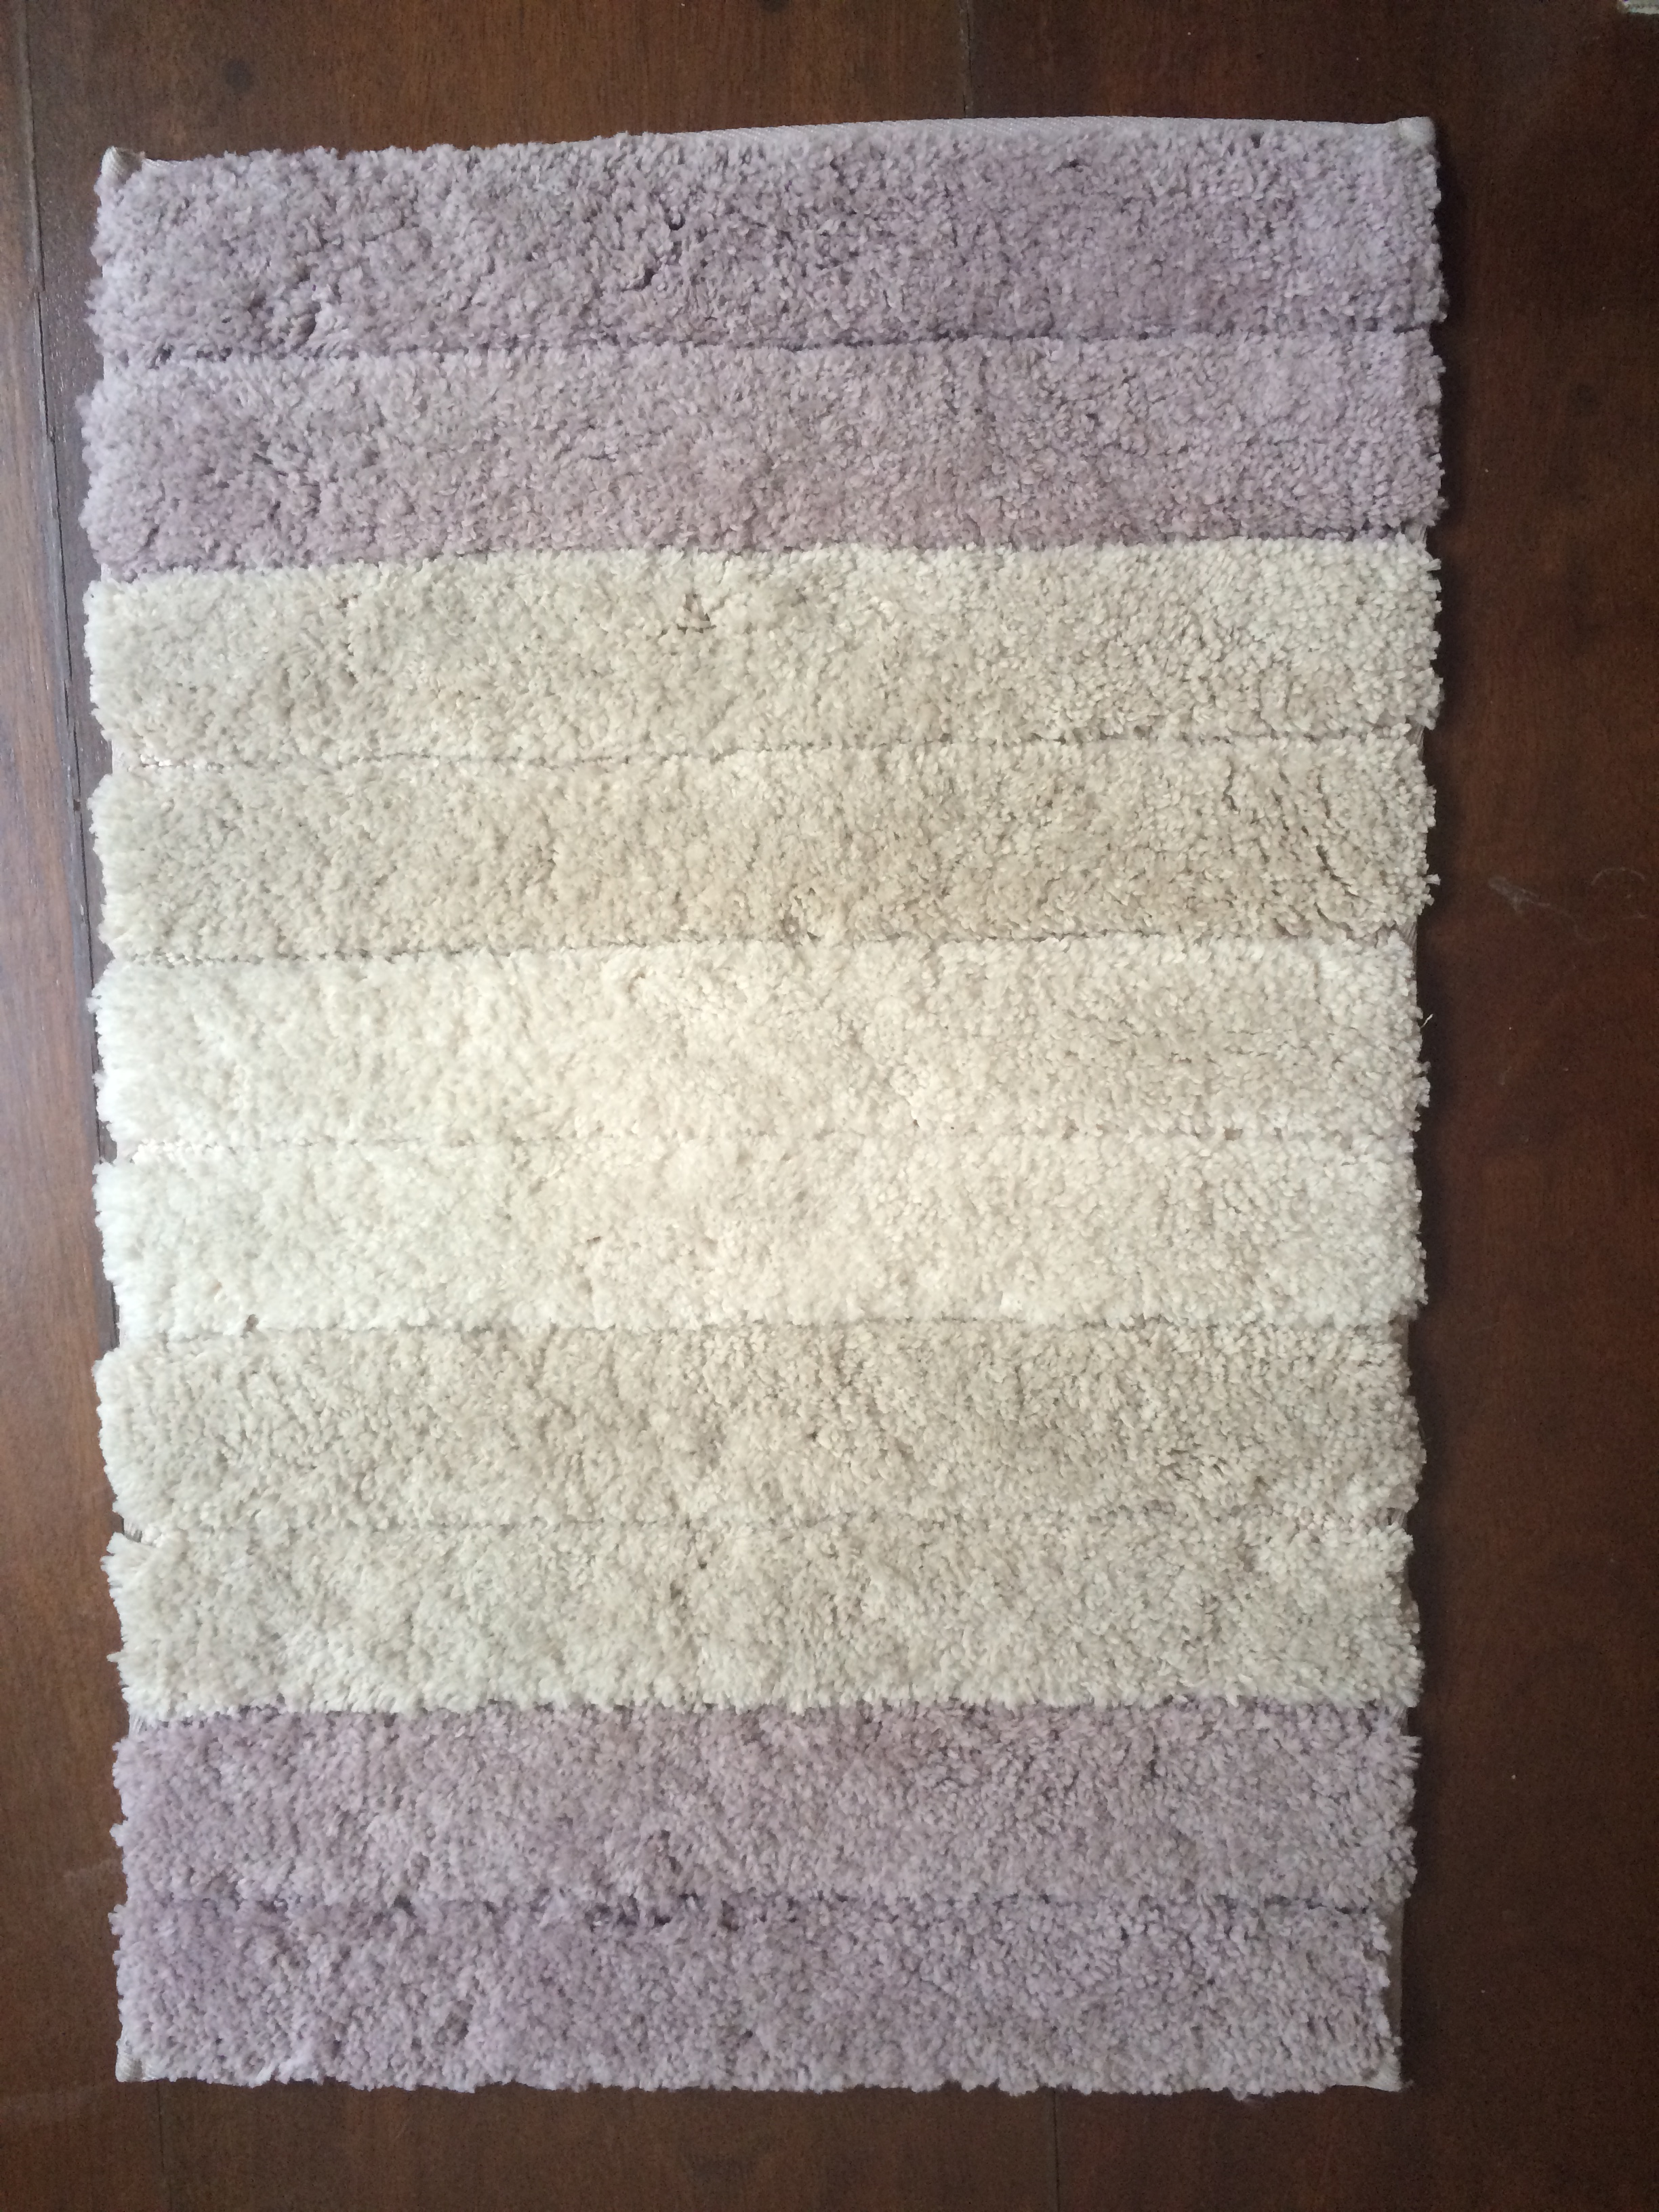 A microfiber bathroom rug is small enough for the narrow space (it's a stair landing, after all).